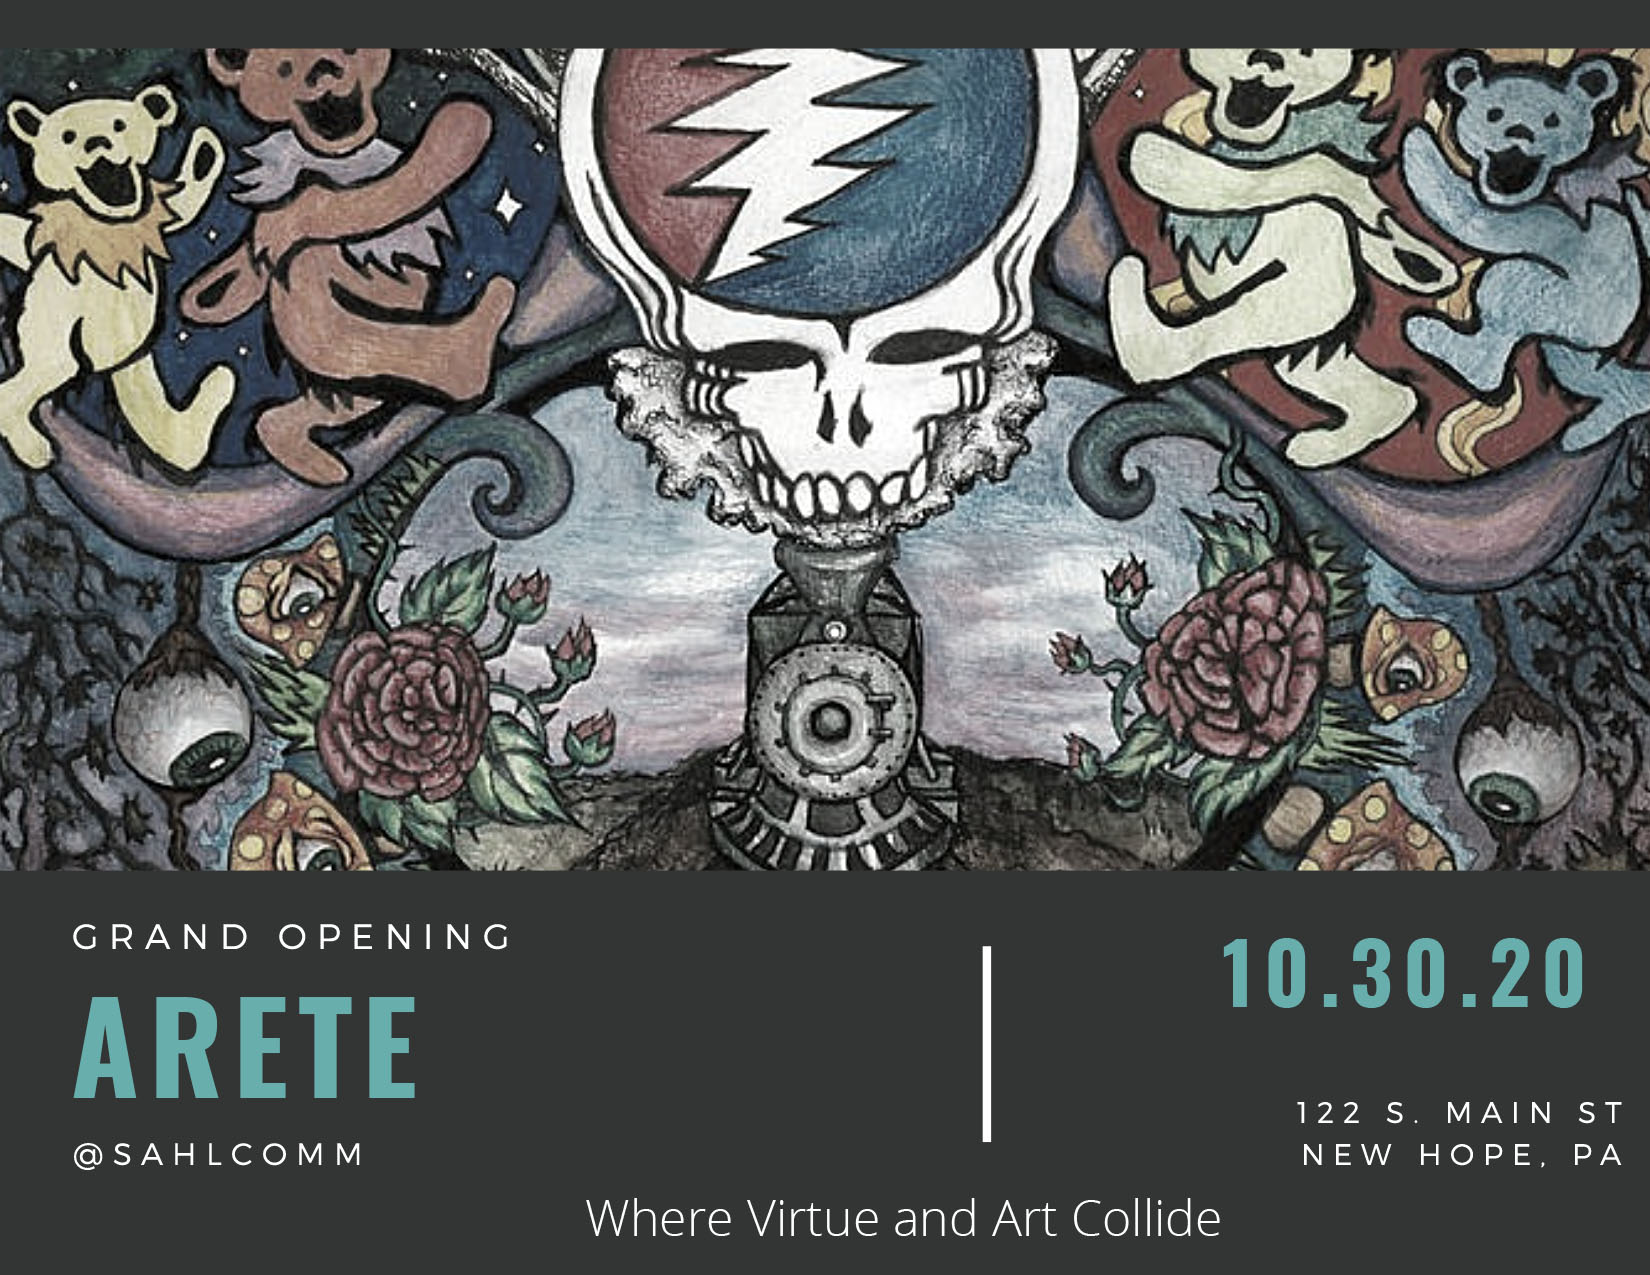 Announcing Arete Gallery in New Hope Pa Where Virtue and Art Collide